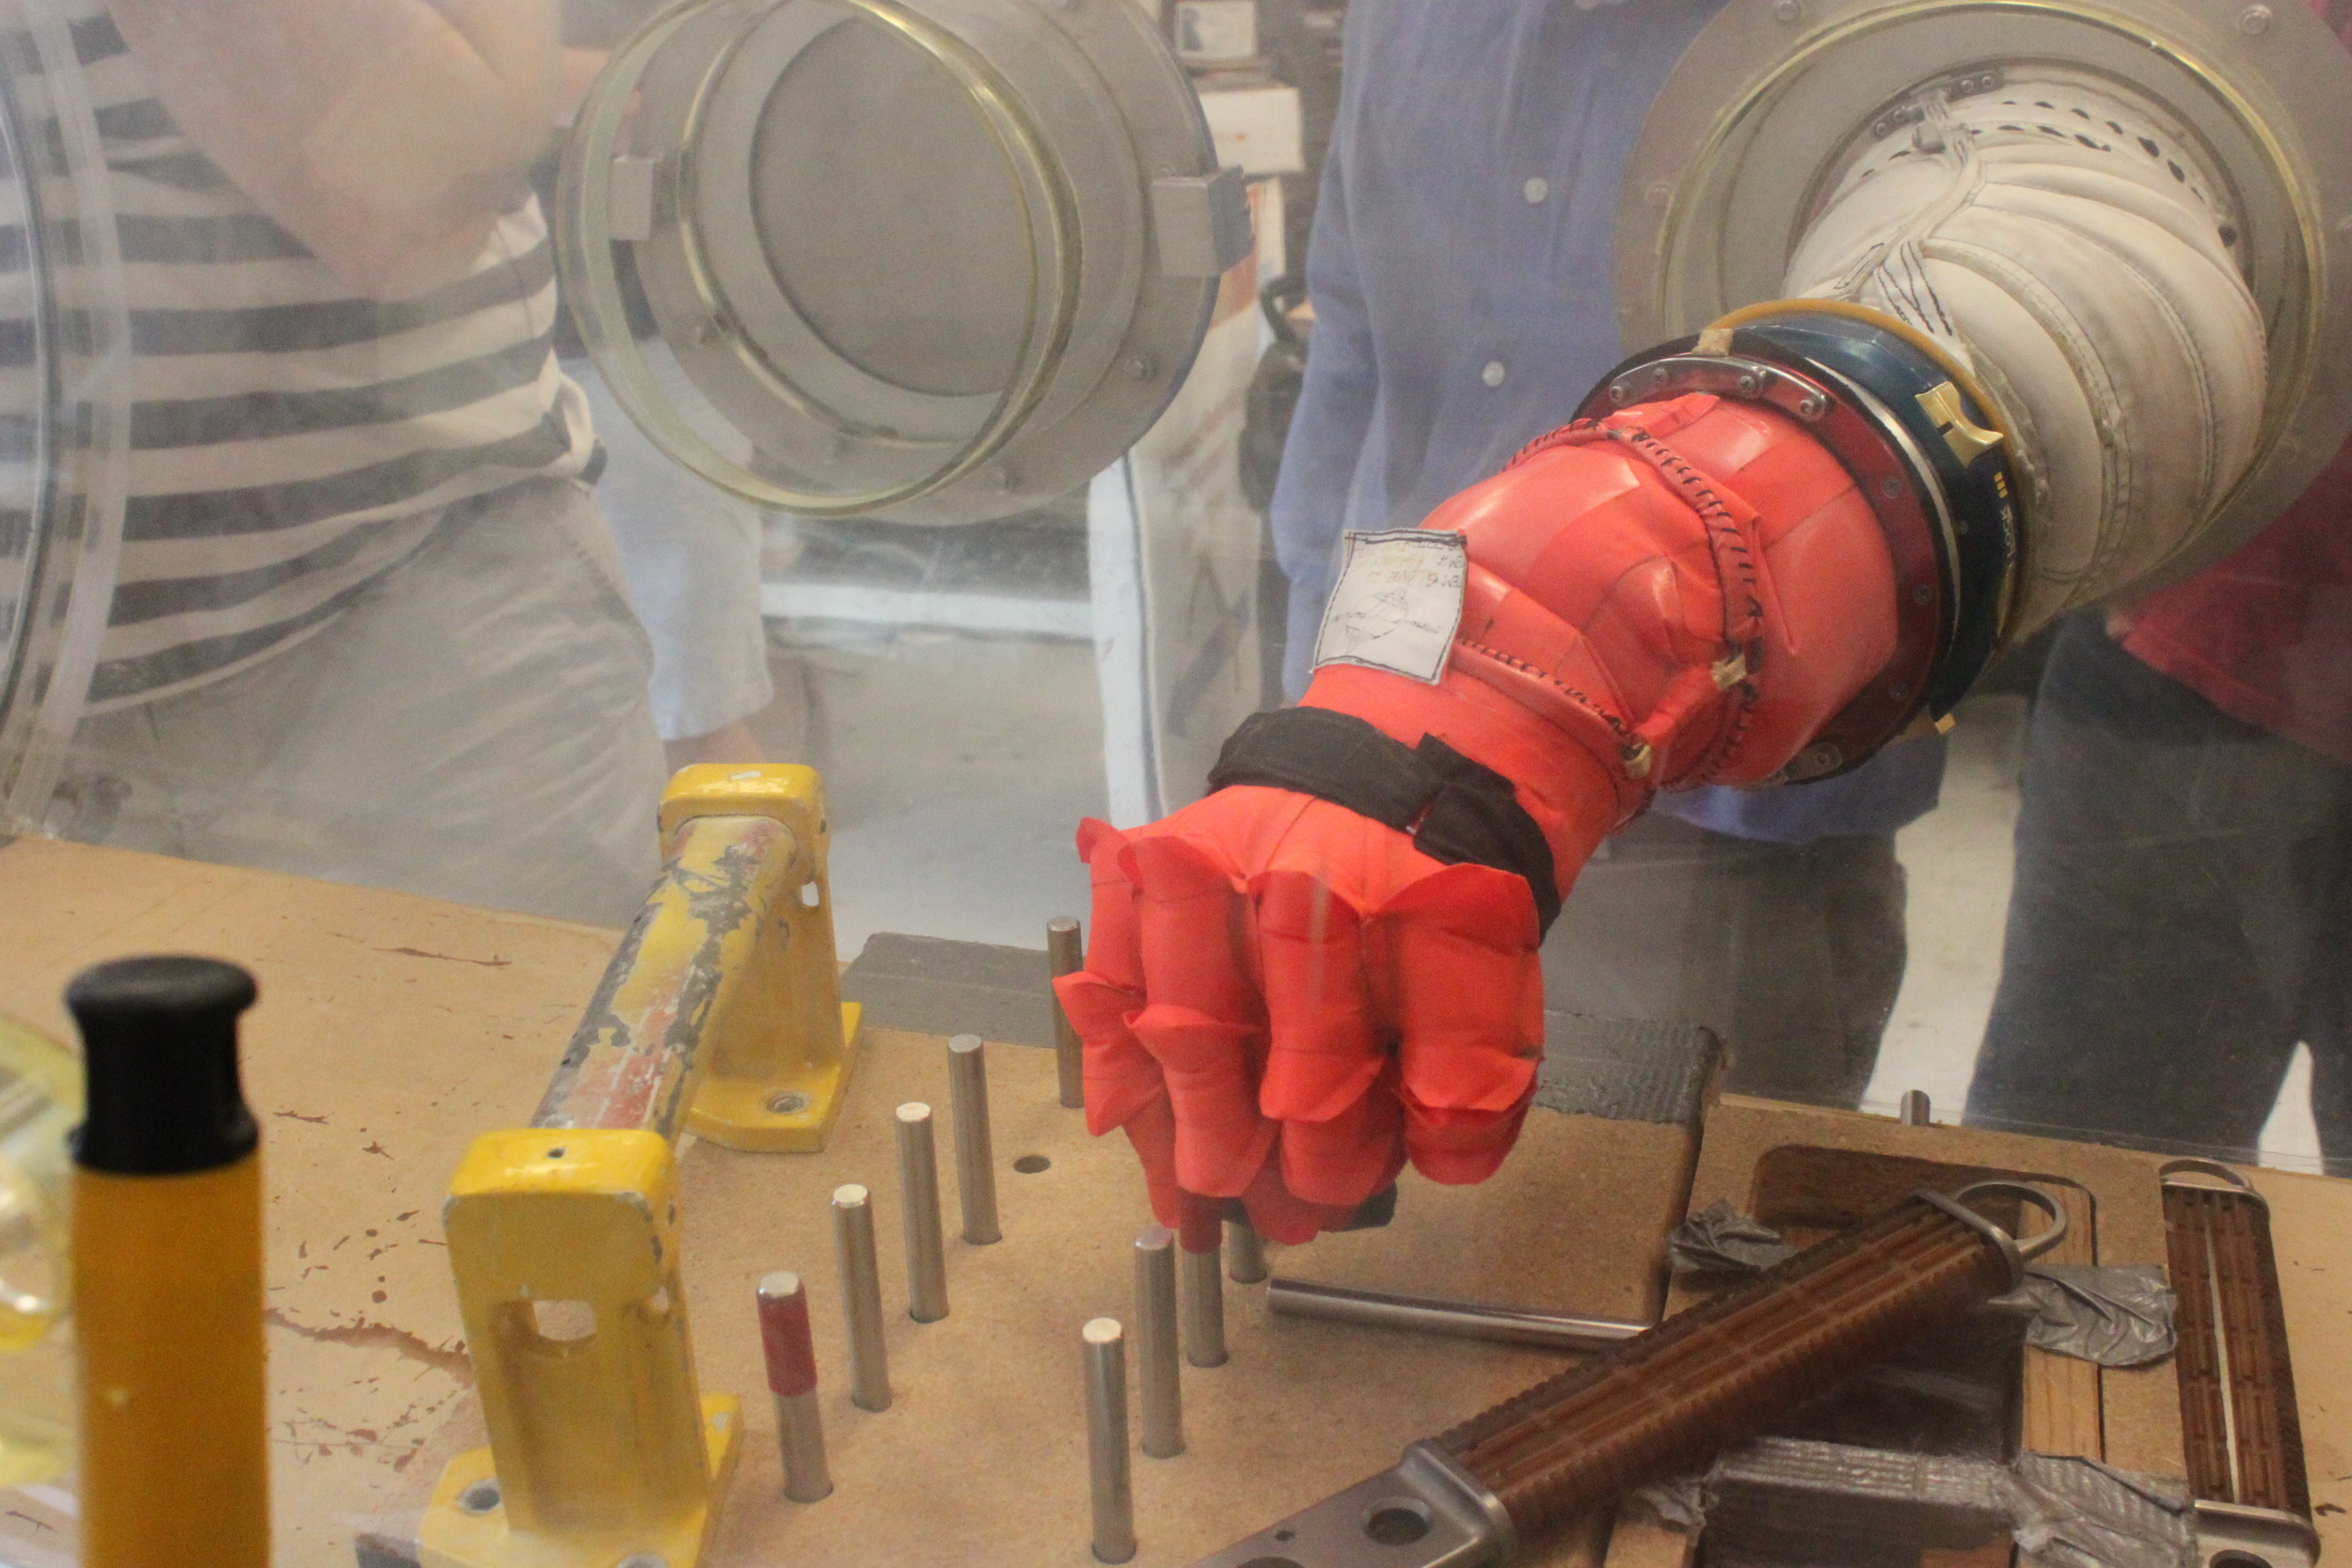 Gloves for Space & PPE